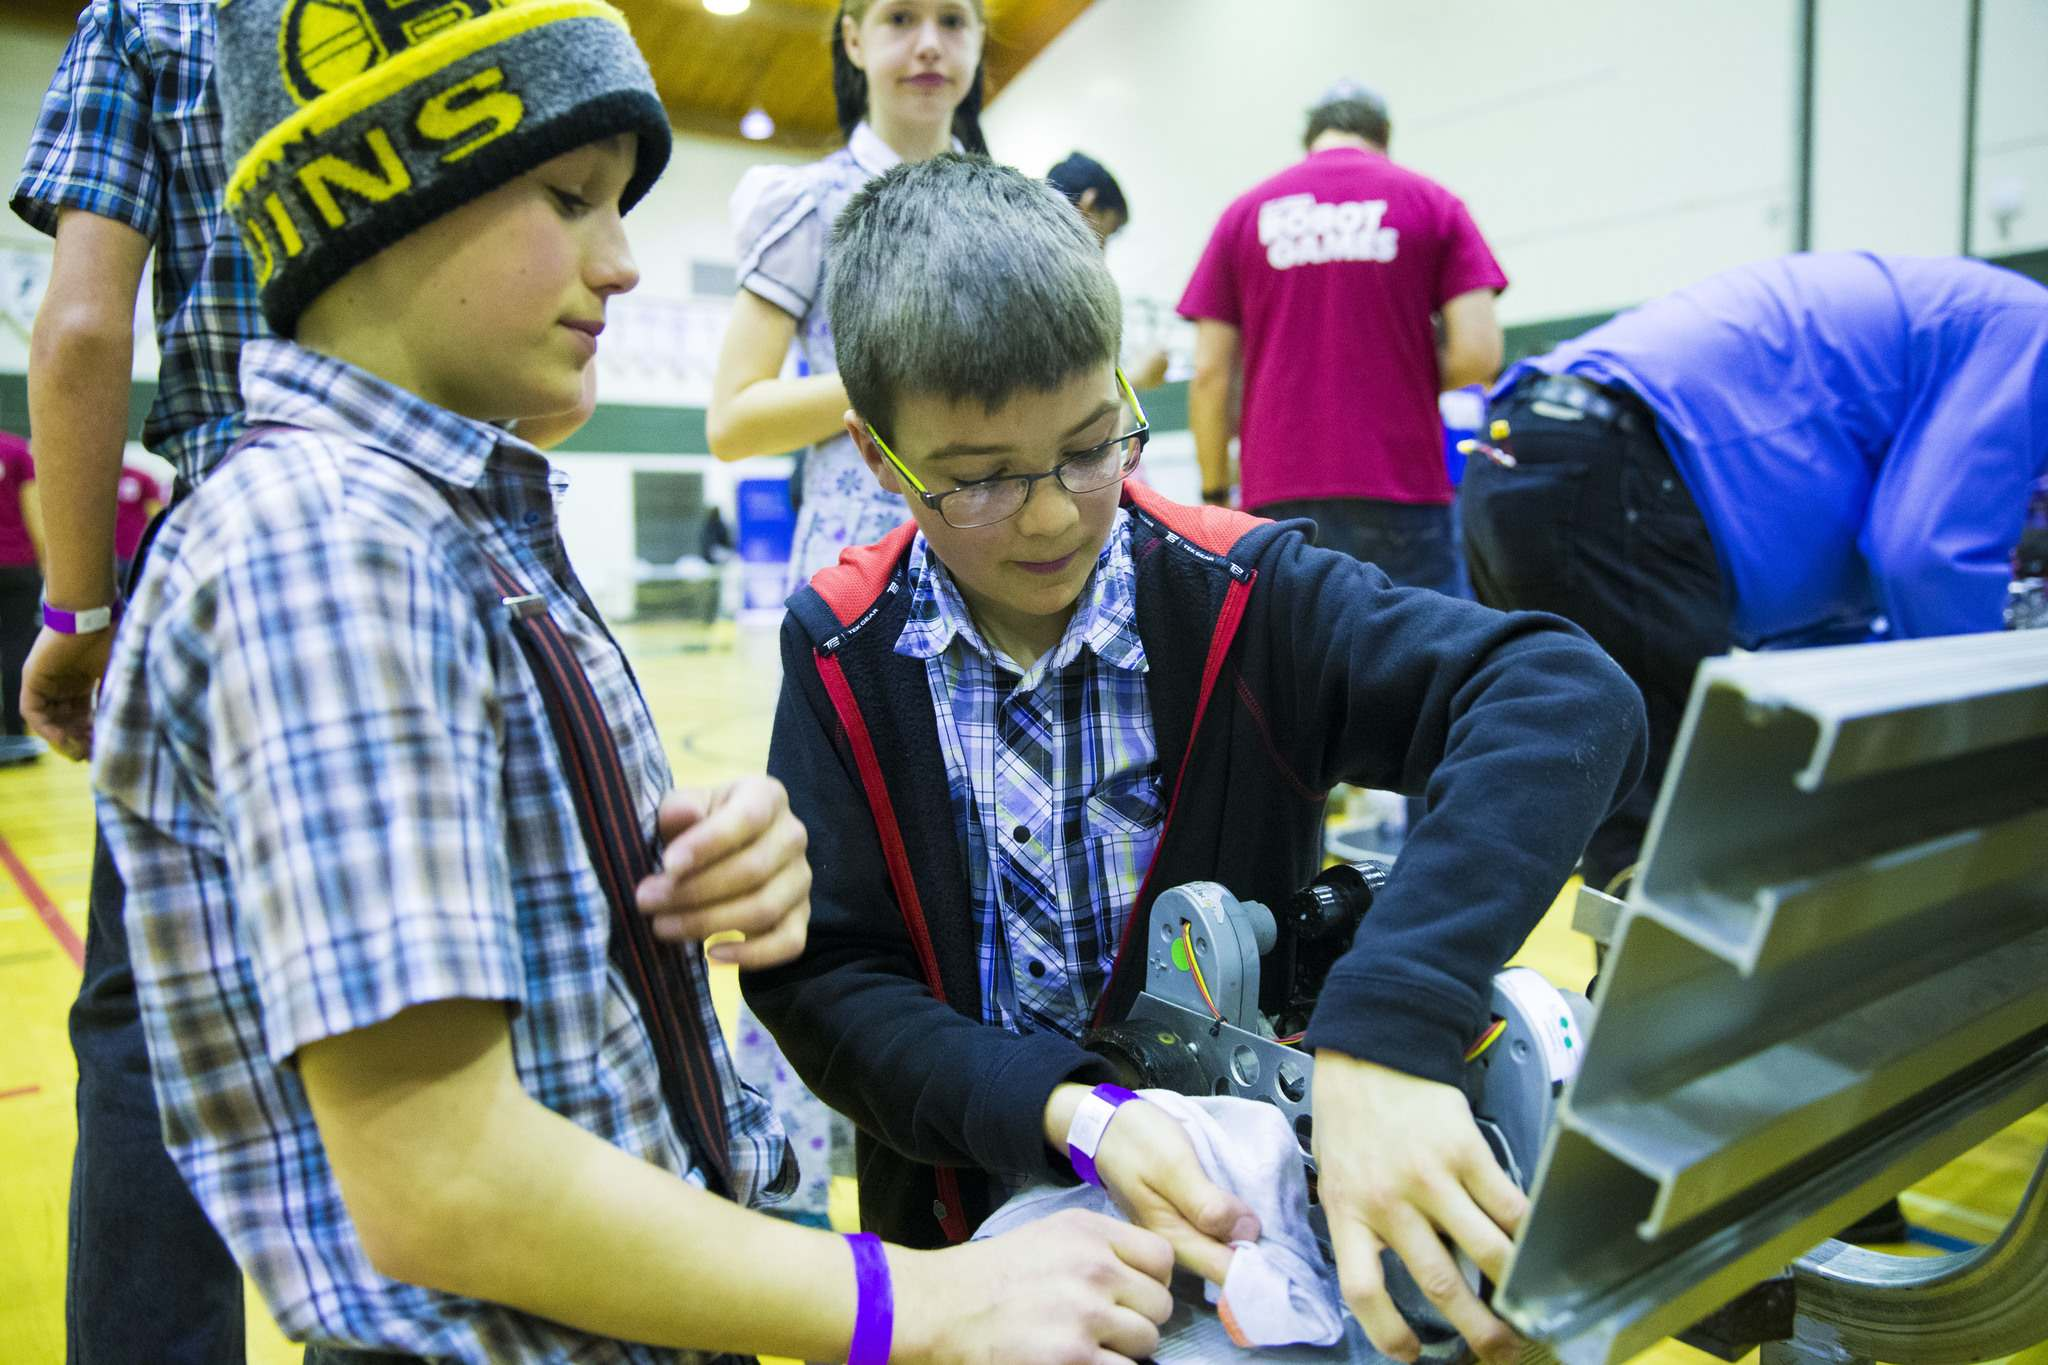 PHOTOS BY MIKAELA MACKENZIE / WINNIPEG FREE PRESS</p><p>Luke Baer (right), 11, and Judah Kleinsasser, 13, clean a robot before competing with it at the annual Manitoba Robot Games at the Technical Vocational High School in Winnipeg on Saturday, March 24, 2018.</p>